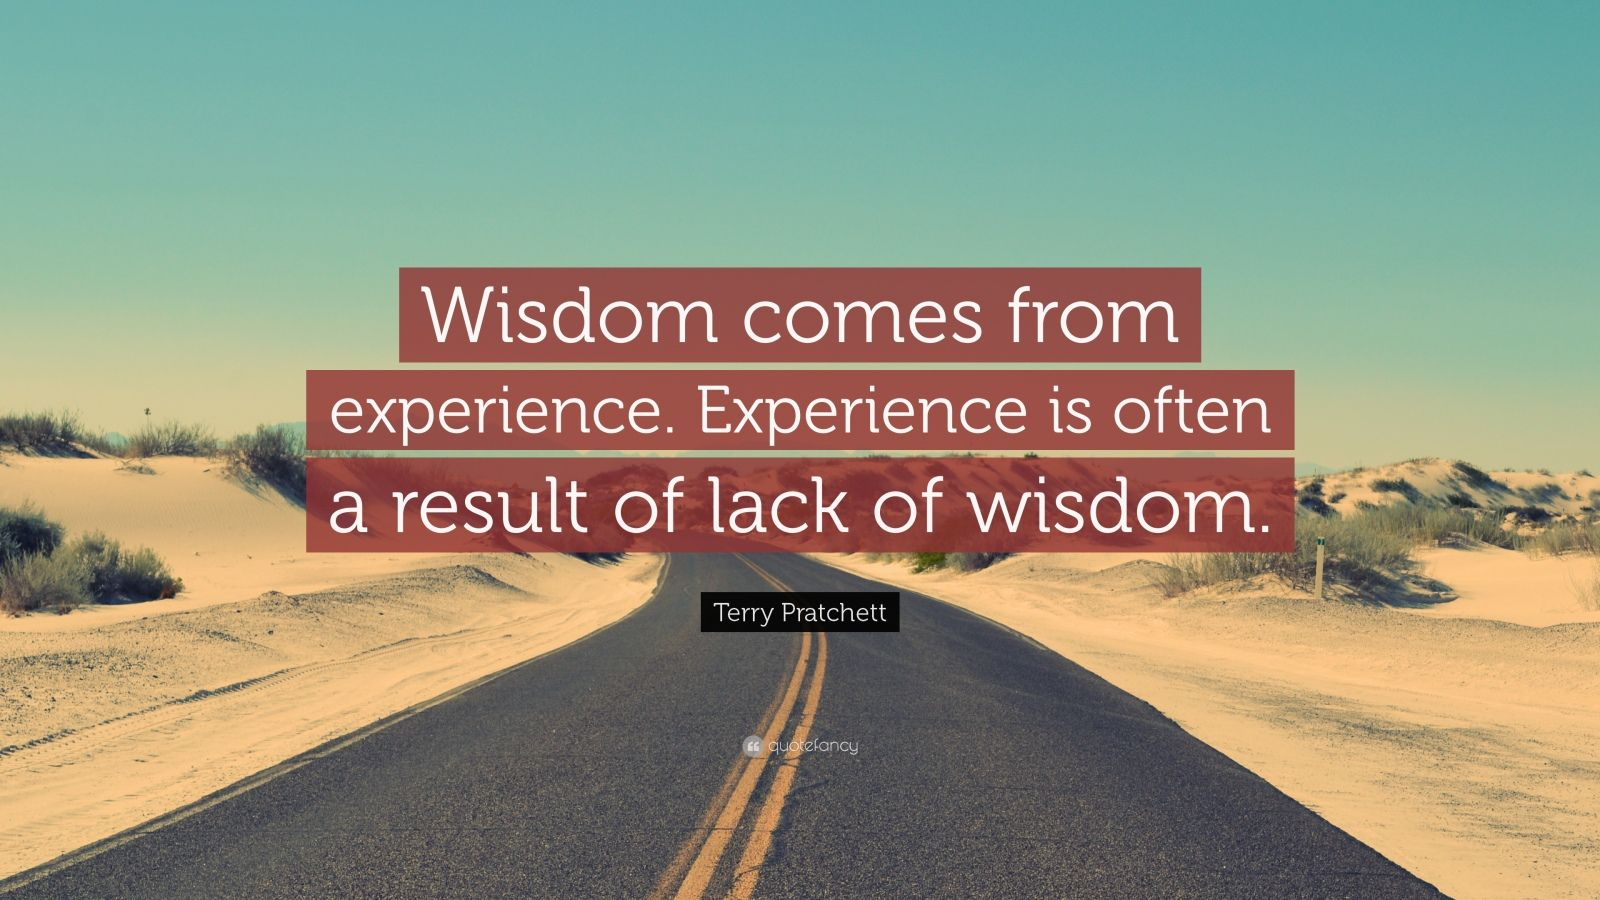 essay on wisdom comes with age Home opinions philosophy does one become wise with age add a new topic does one become wise with age asked by: but everyone says that wisdom comes with age.